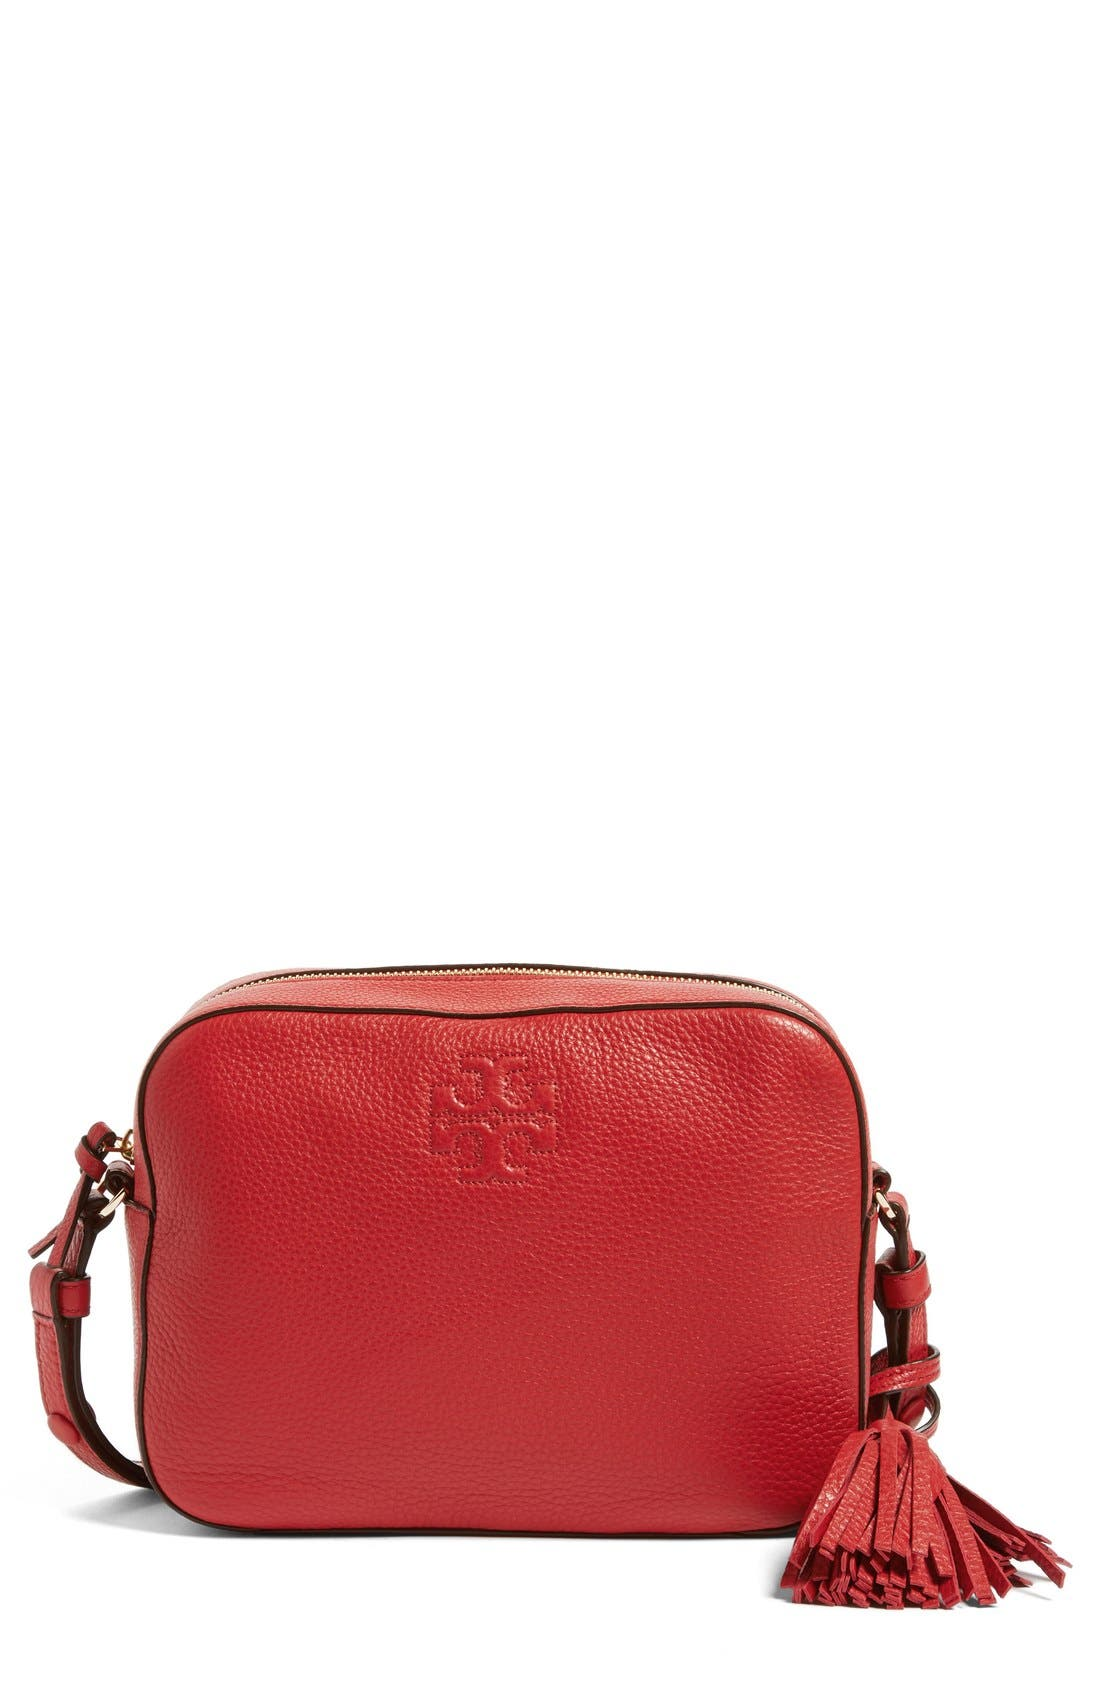 Main Image - Tory Burch 'Thea' Leather Shoulder Bag